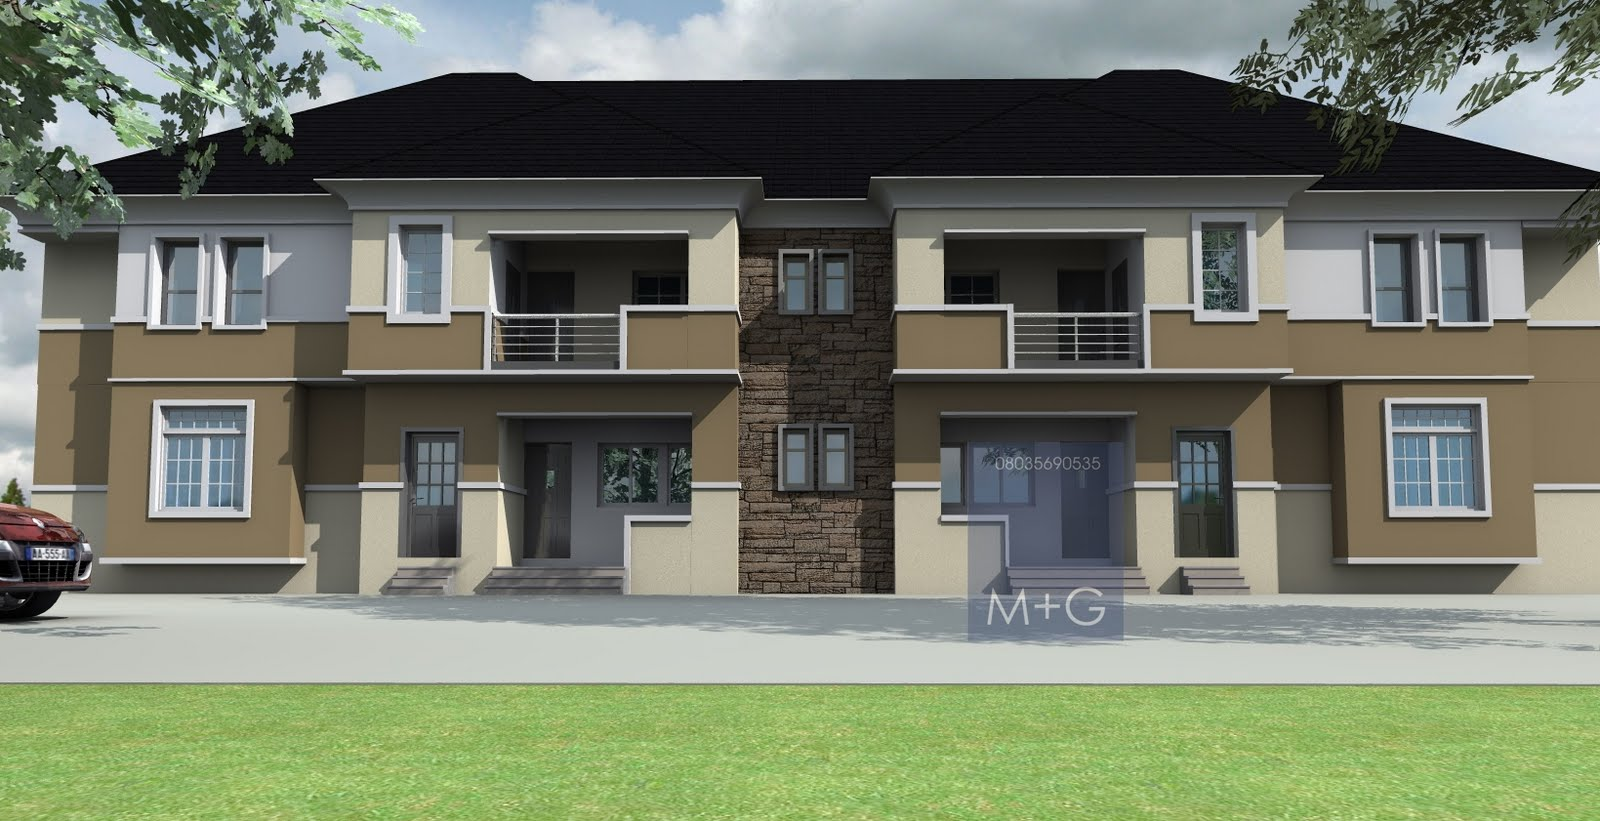 Contemporary nigerian residential architecture 4 units of for Nigerian architectural designs